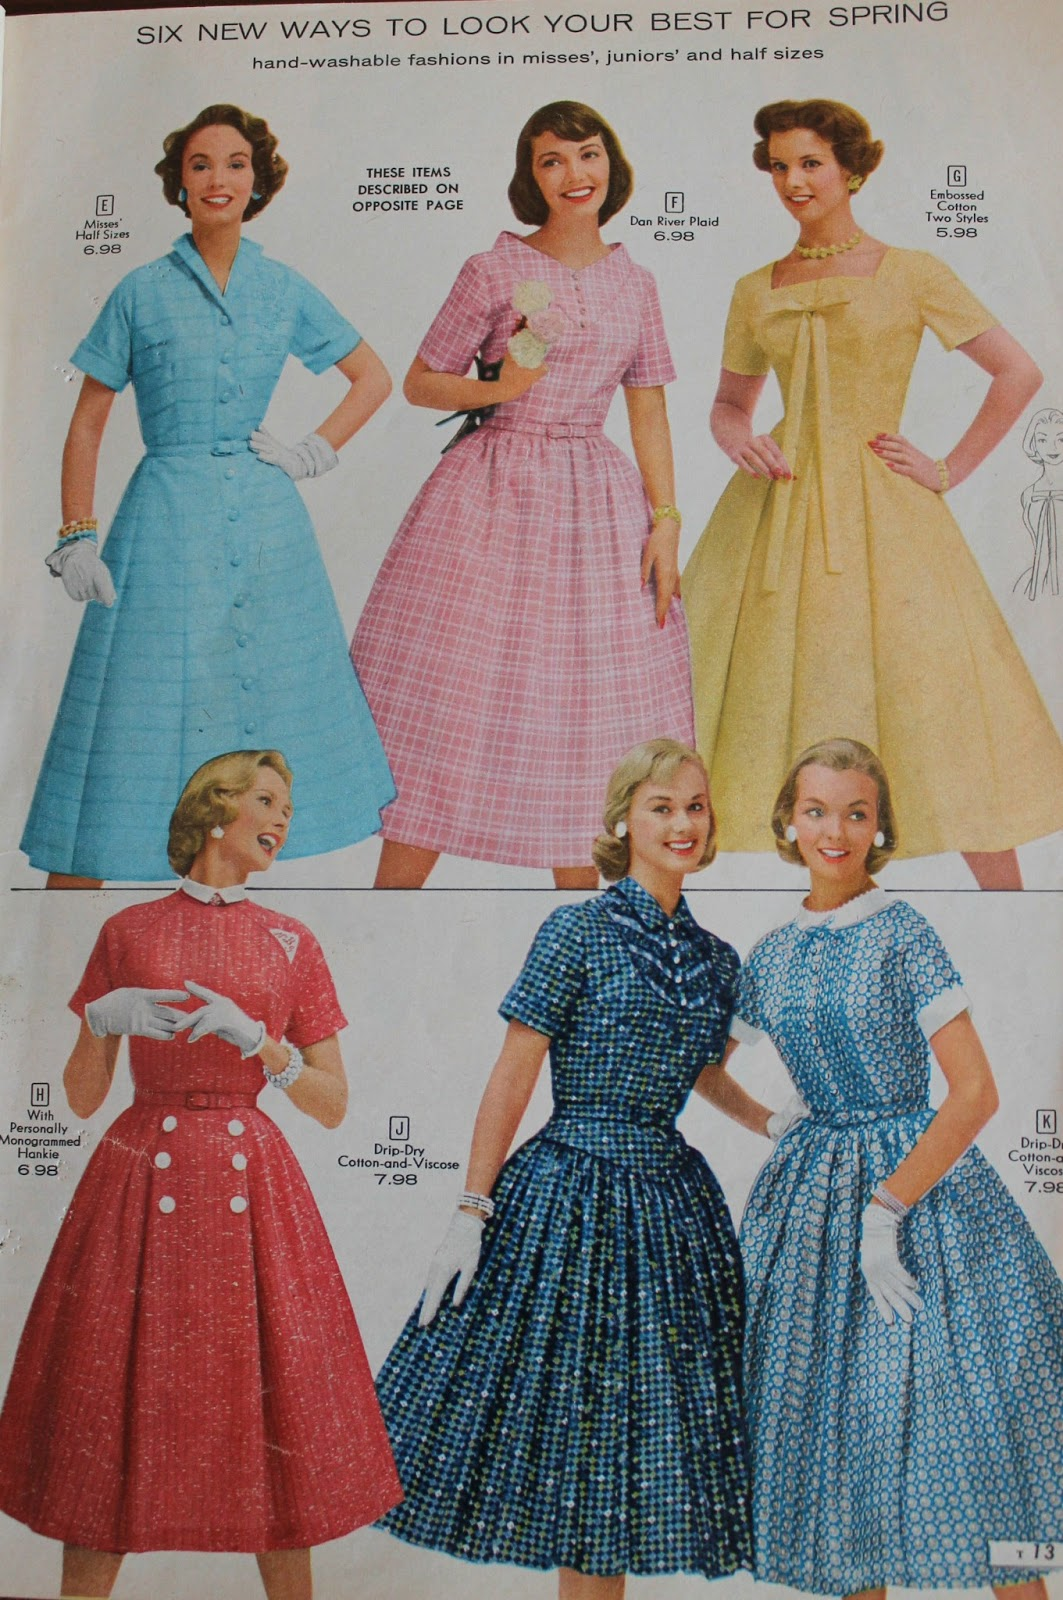 A Little Bit Of Everything Summer Fashions In 1958